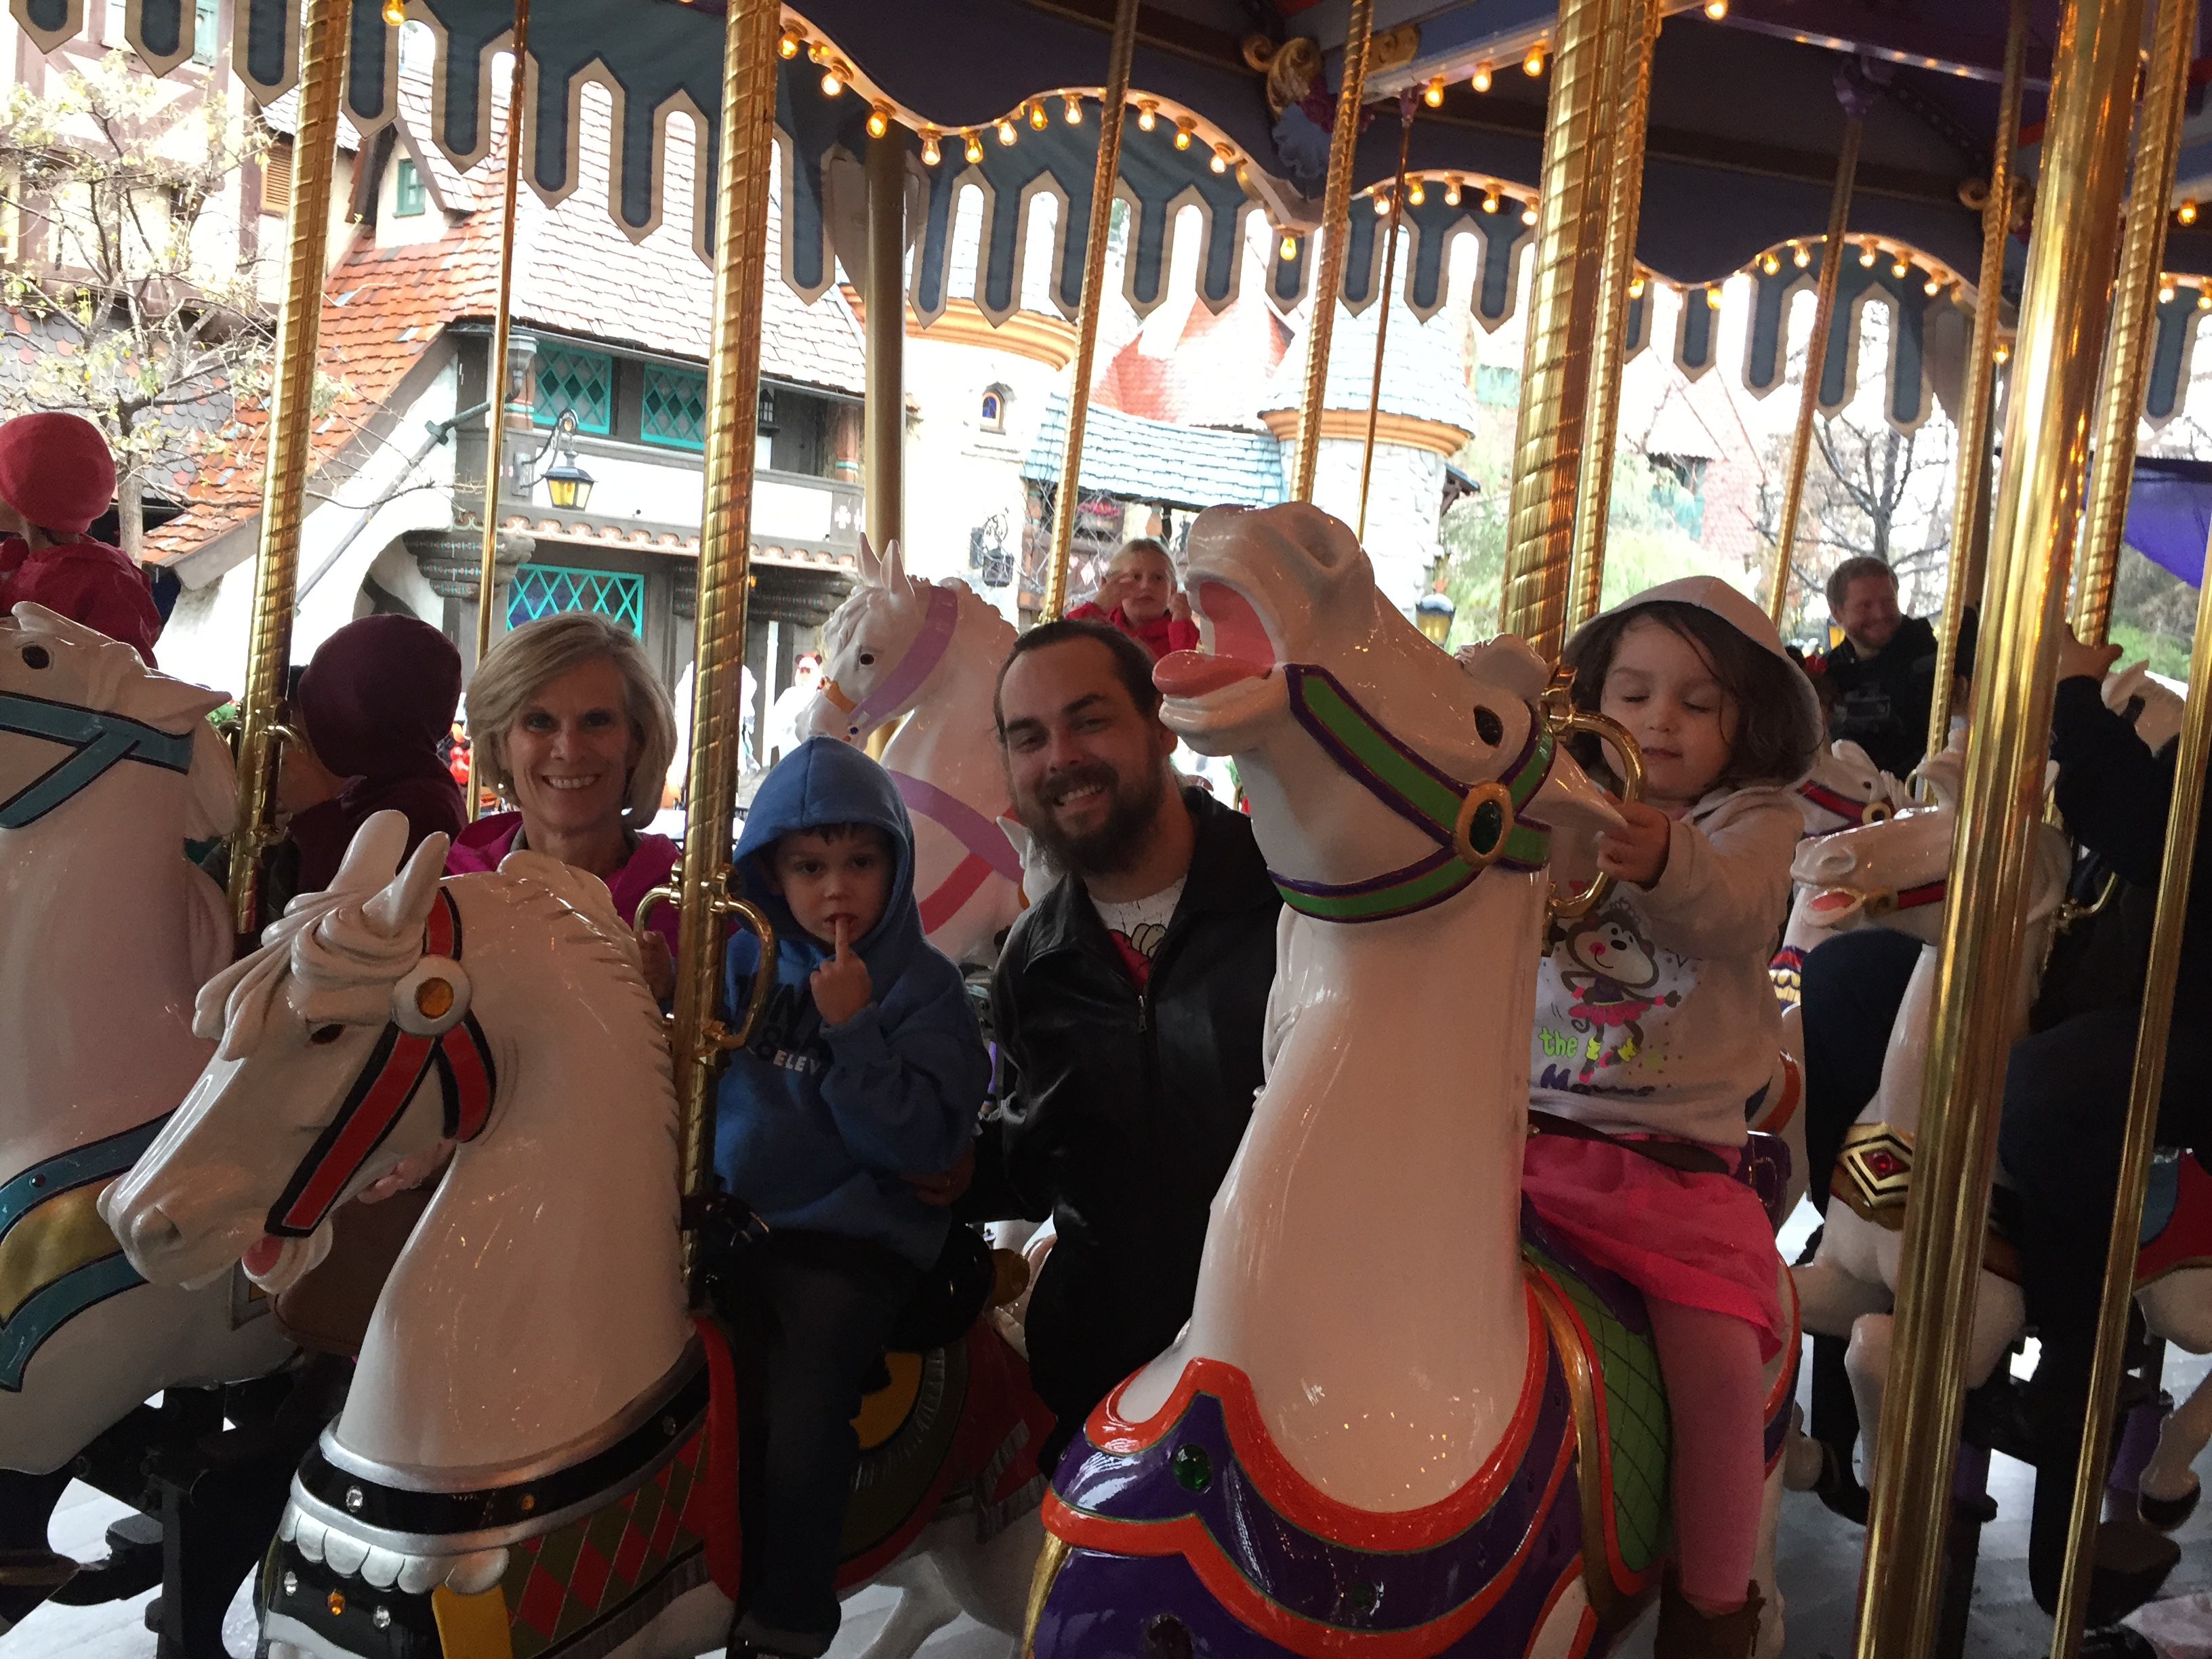 Hughbanks family at Disneyland